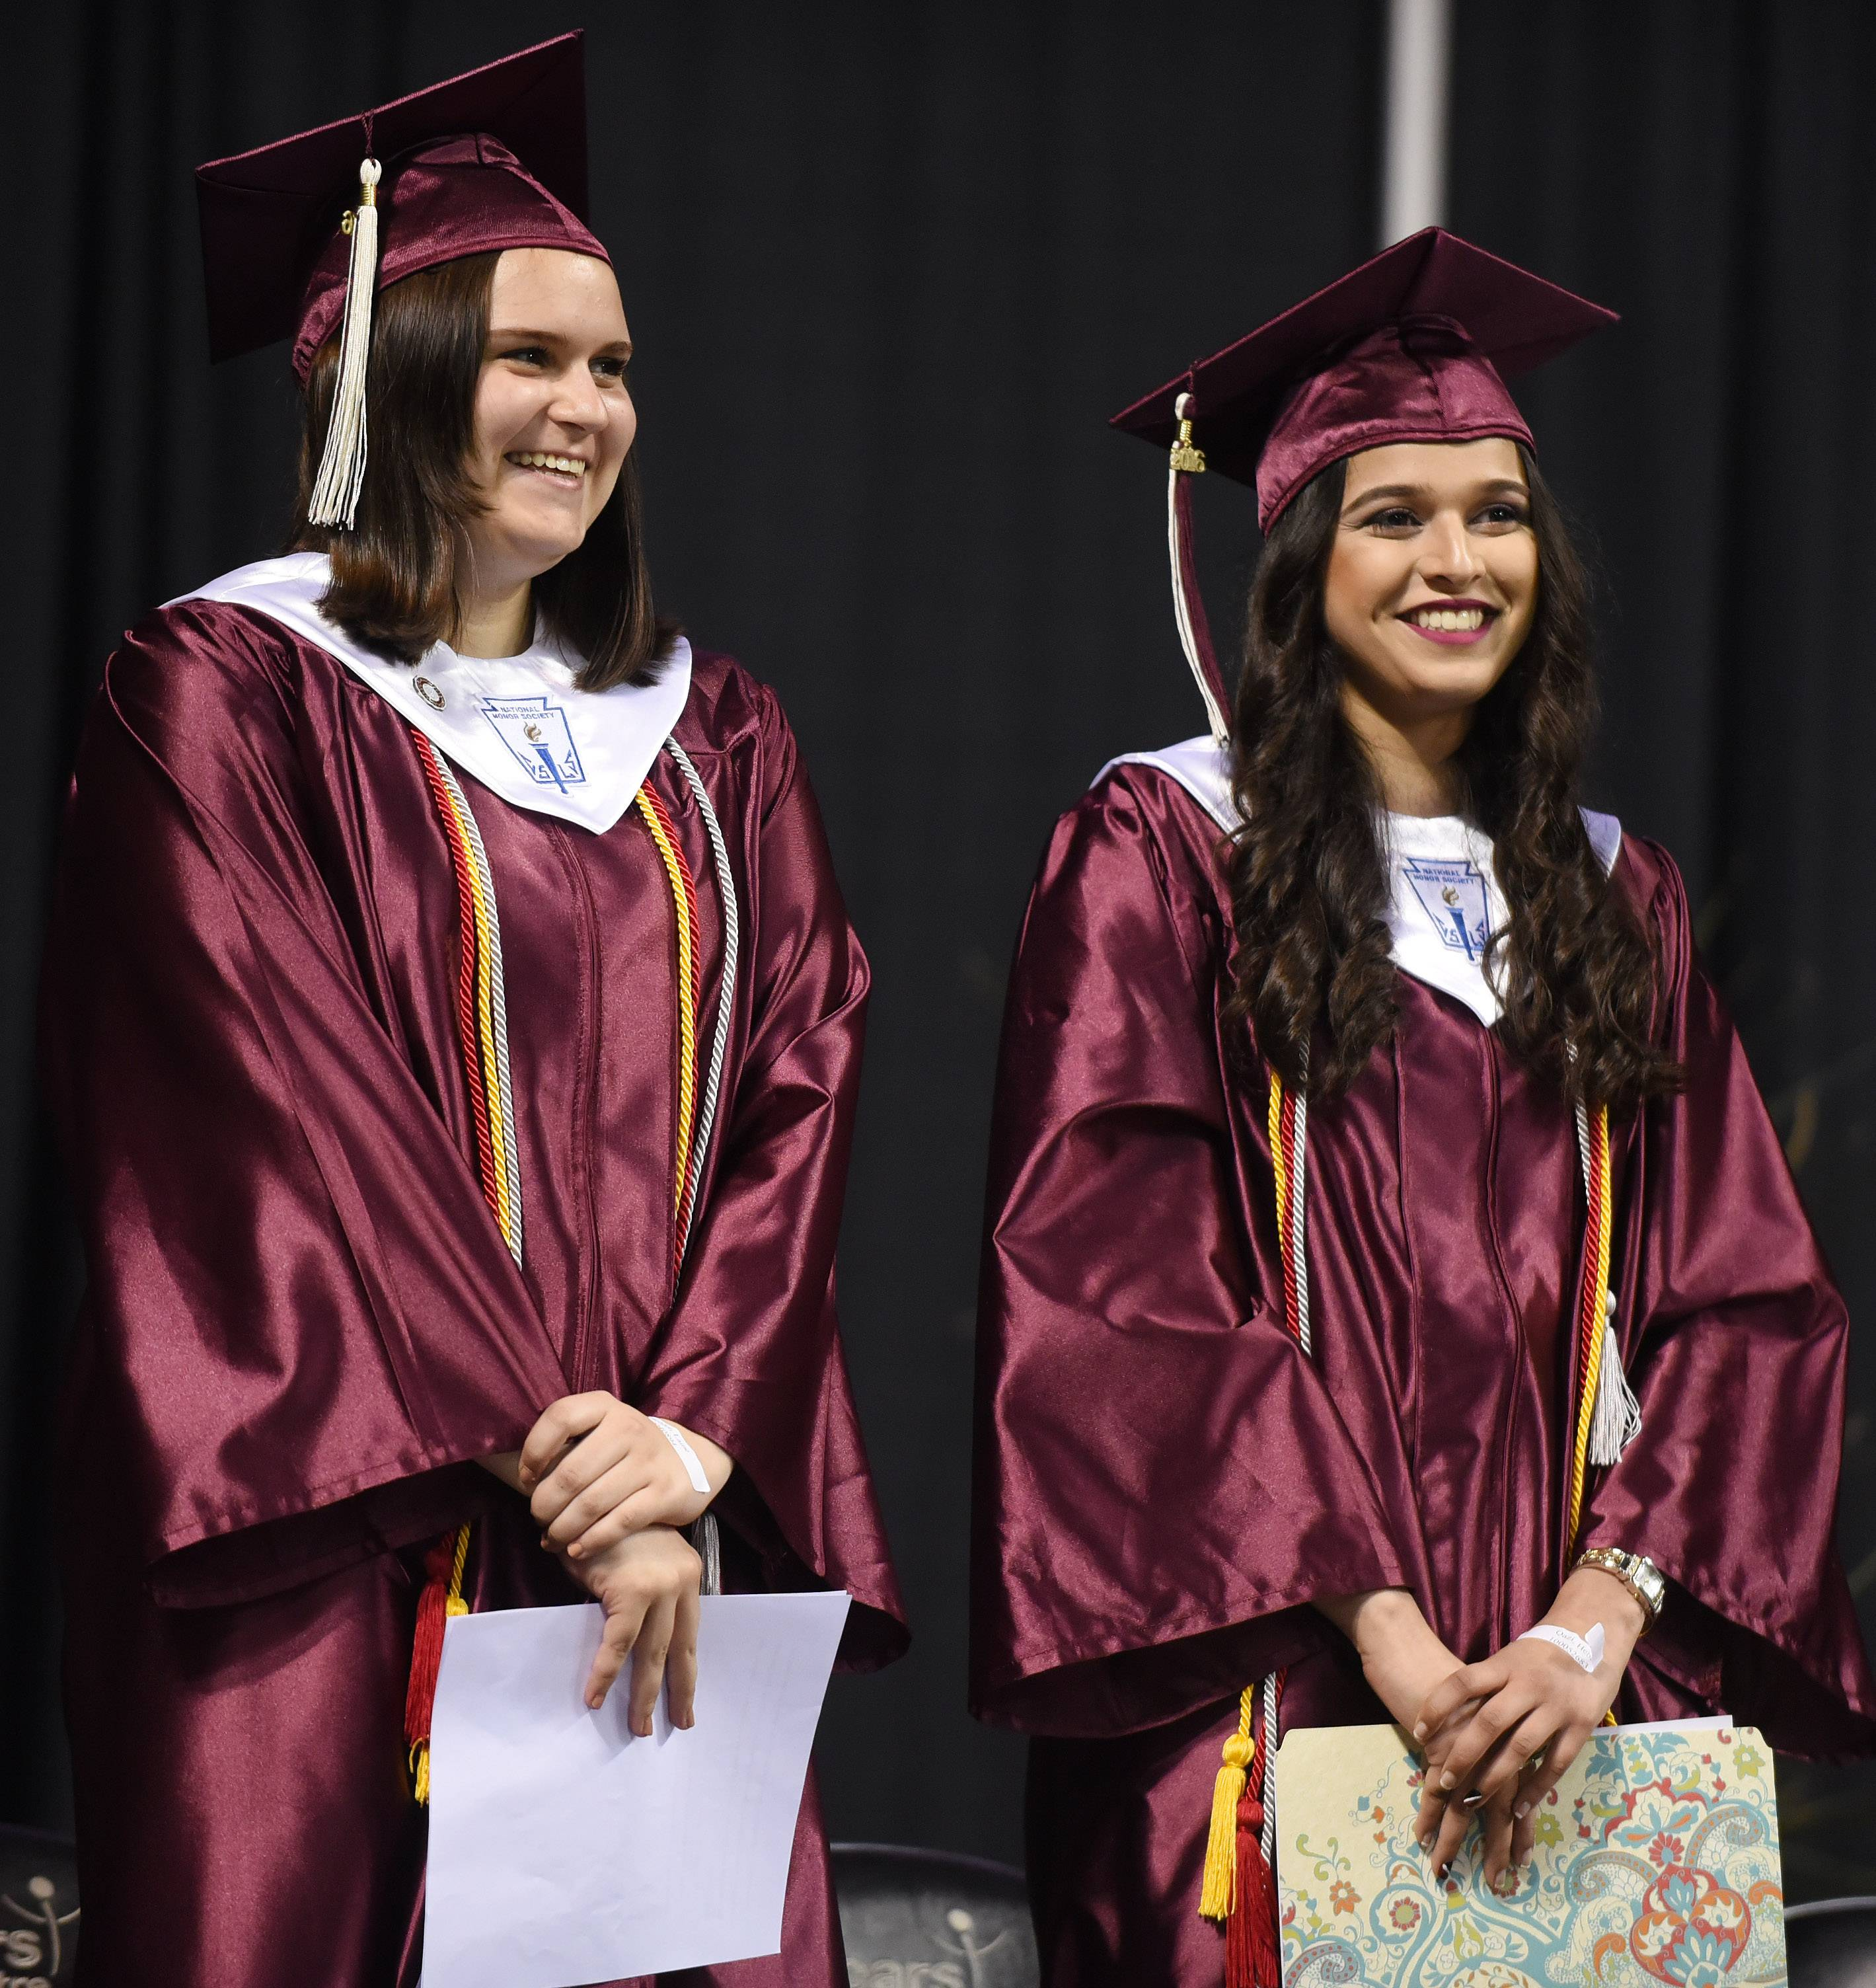 Two of the four valedictorians, Laine Kaehler, left, and Heba Qazi, are introduced on stage prior to speaking during Elgin High School's graduation ceremony at the Sears Centre in Hoffman Estates Saturday. Taha Ahmad and Courtney Marie Ban are also valedictorians for the class of 2016.